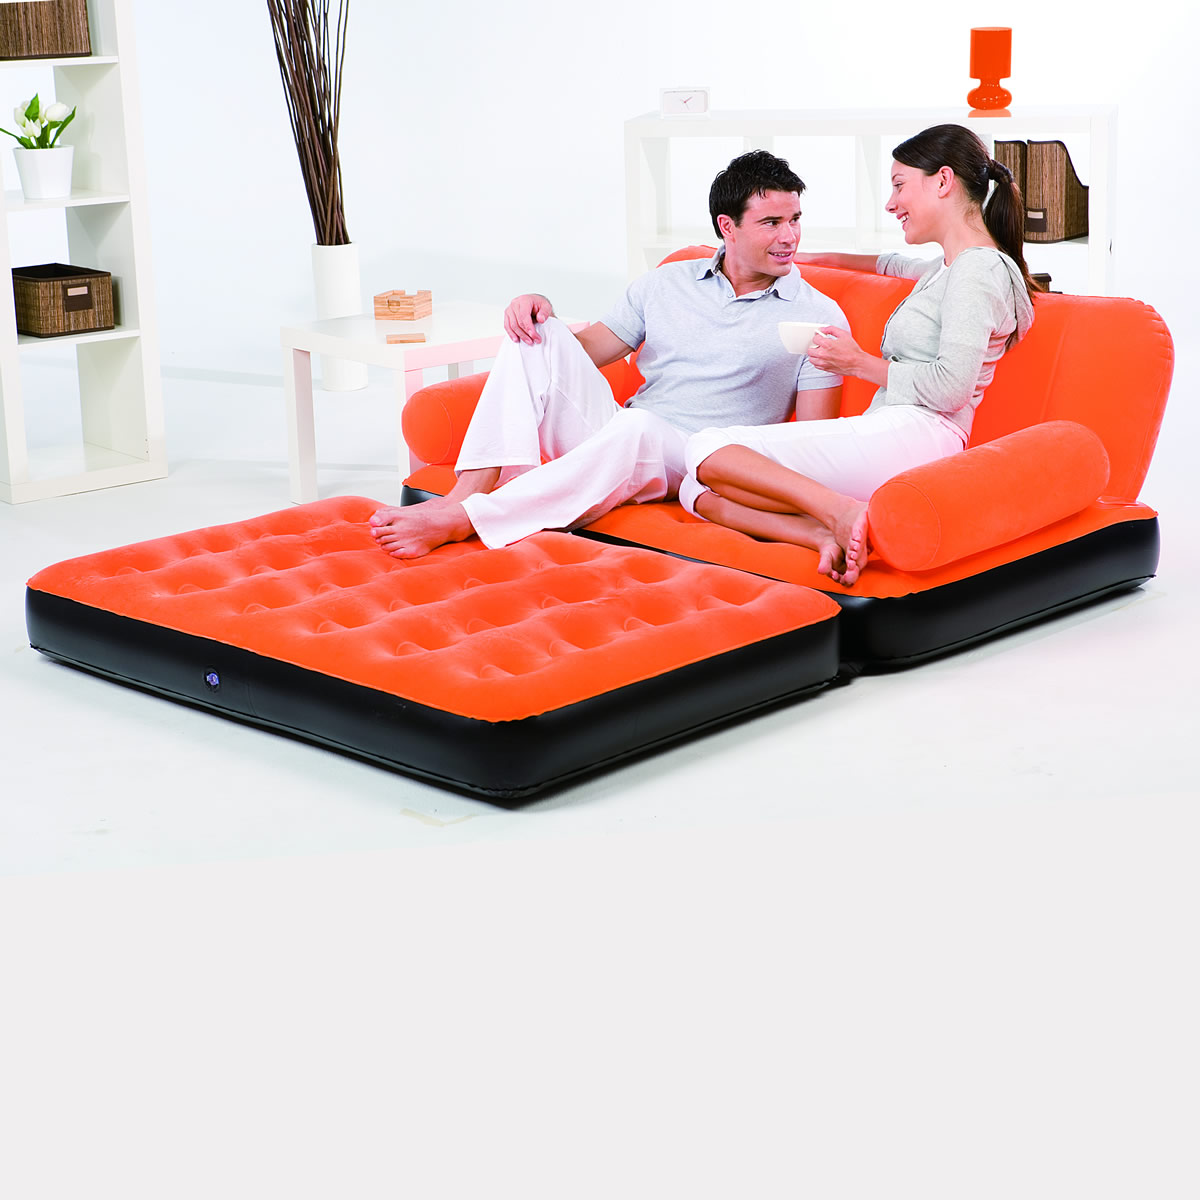 Double sofa air bed inflatable blow up couch furniture with air pump camping bed ebay Bed in a couch